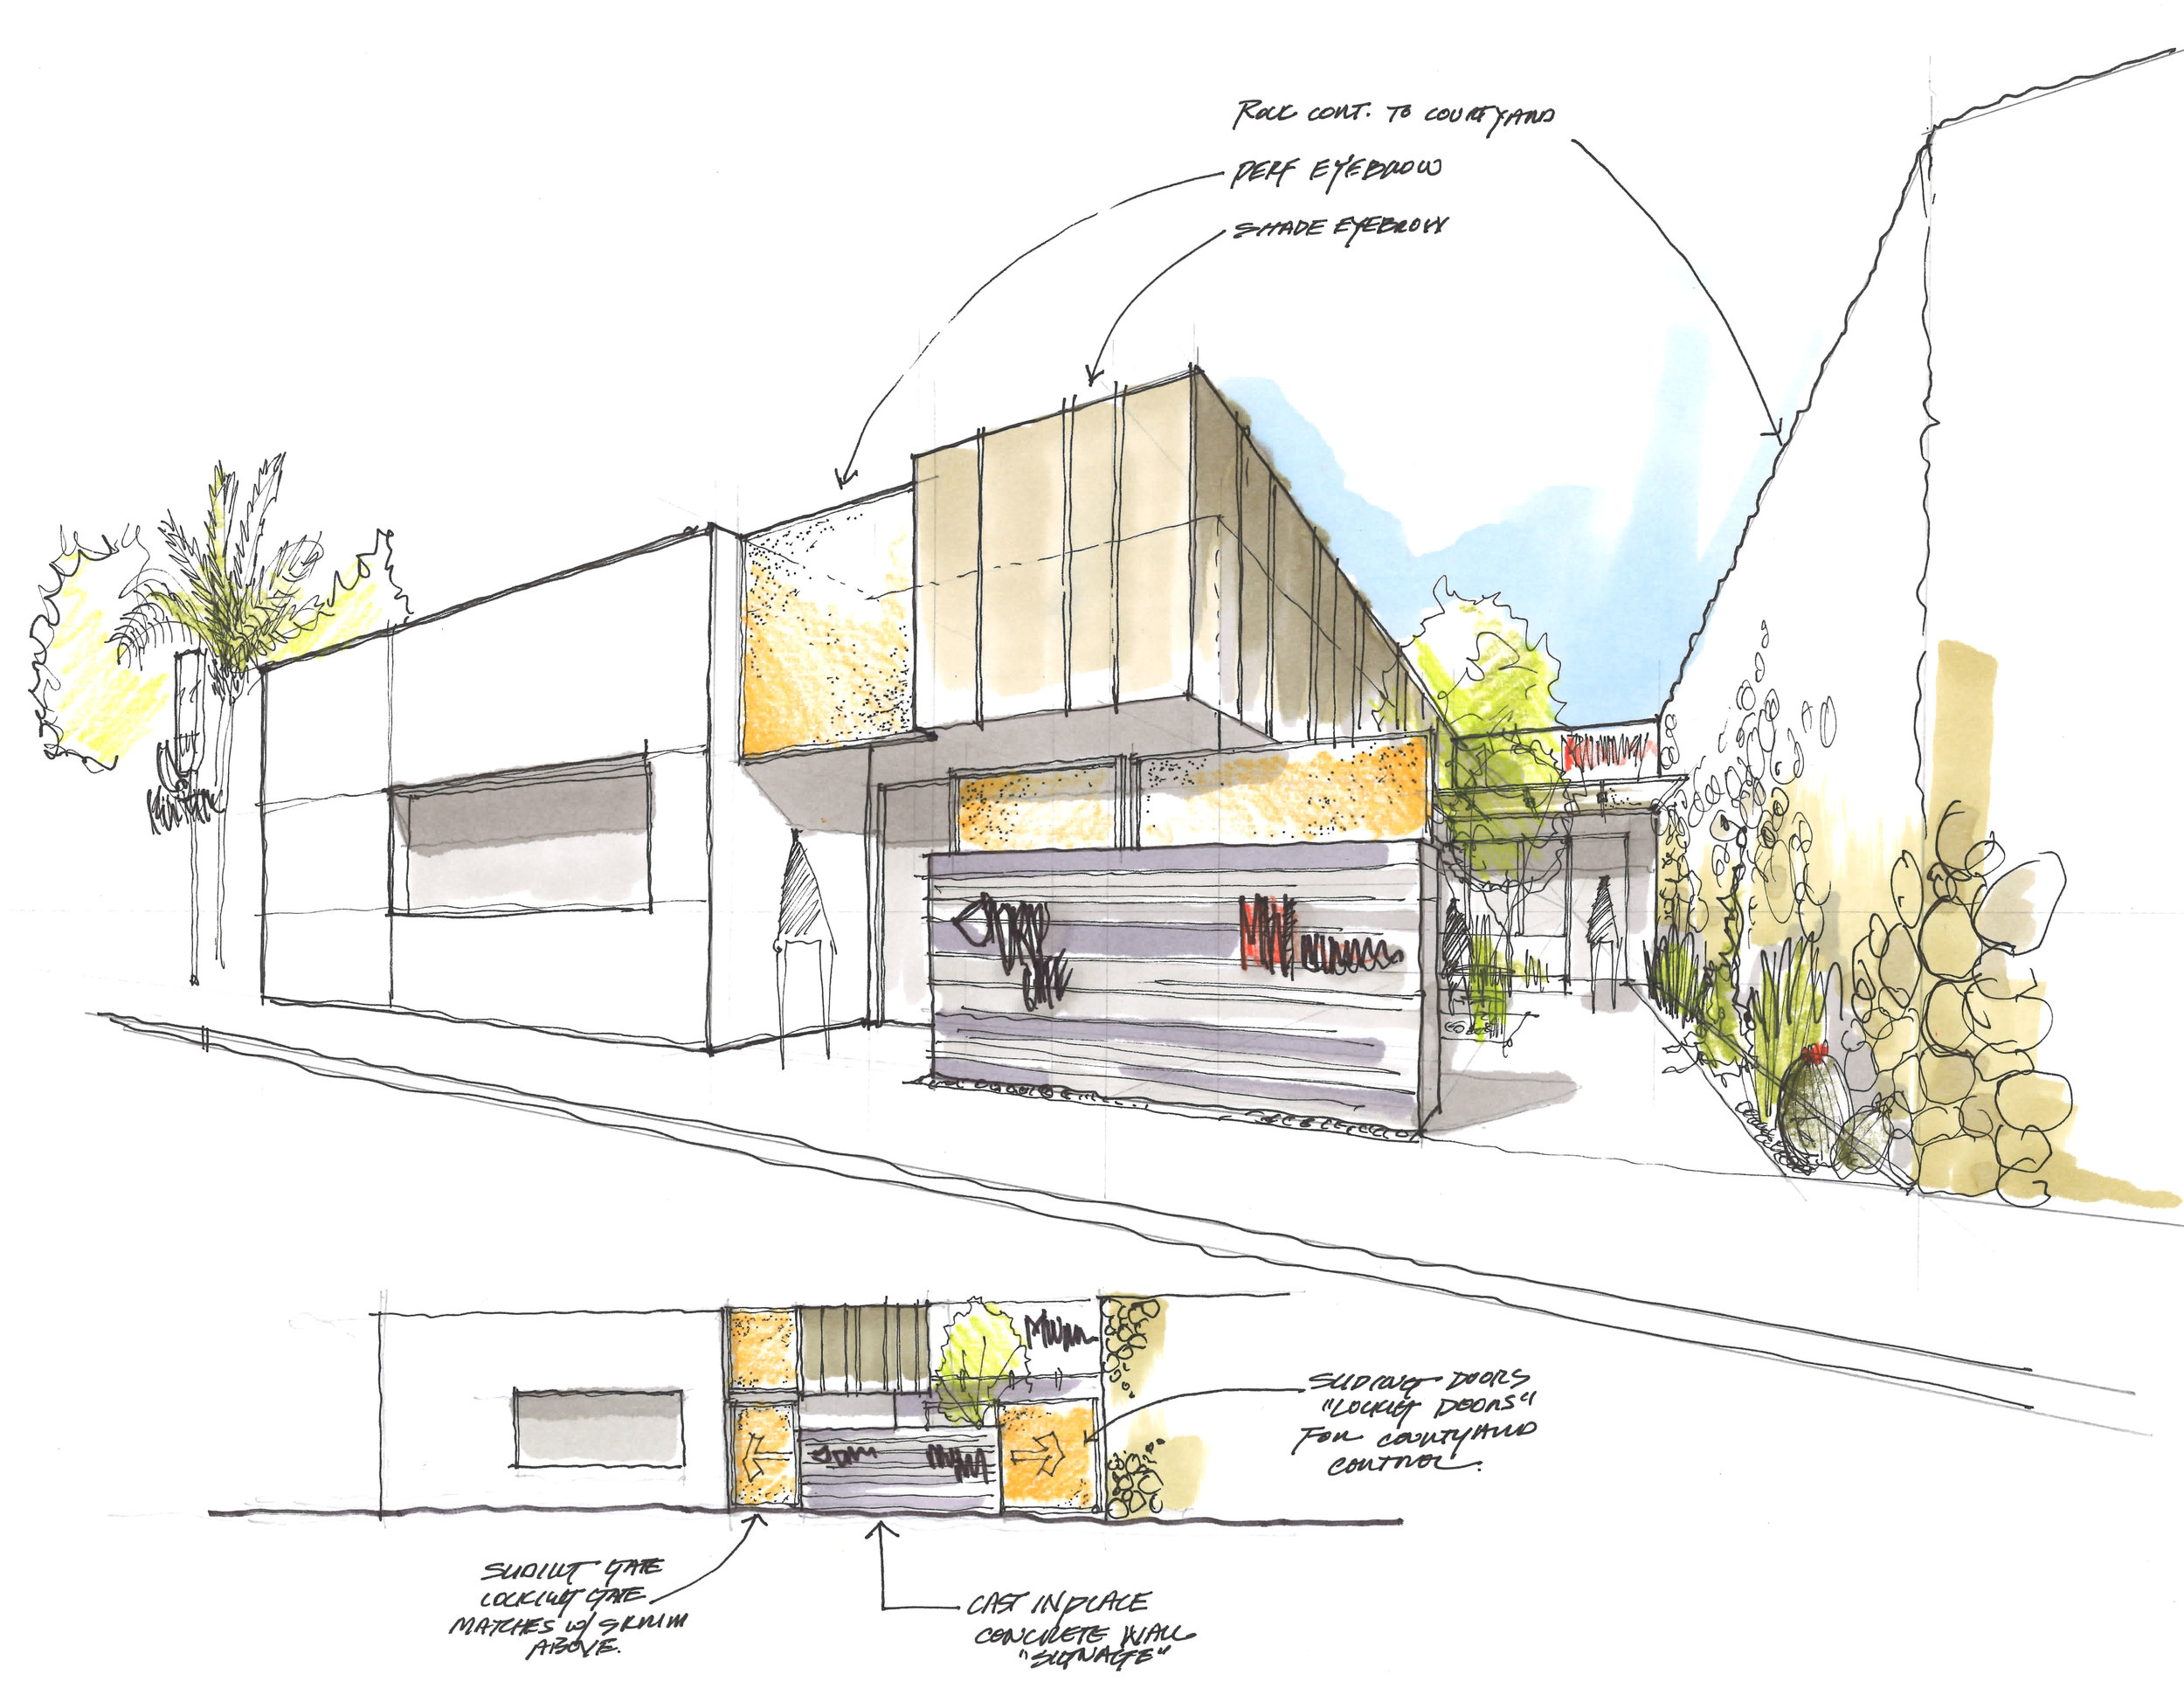 MW Offices - Entry Perspective/Elevation